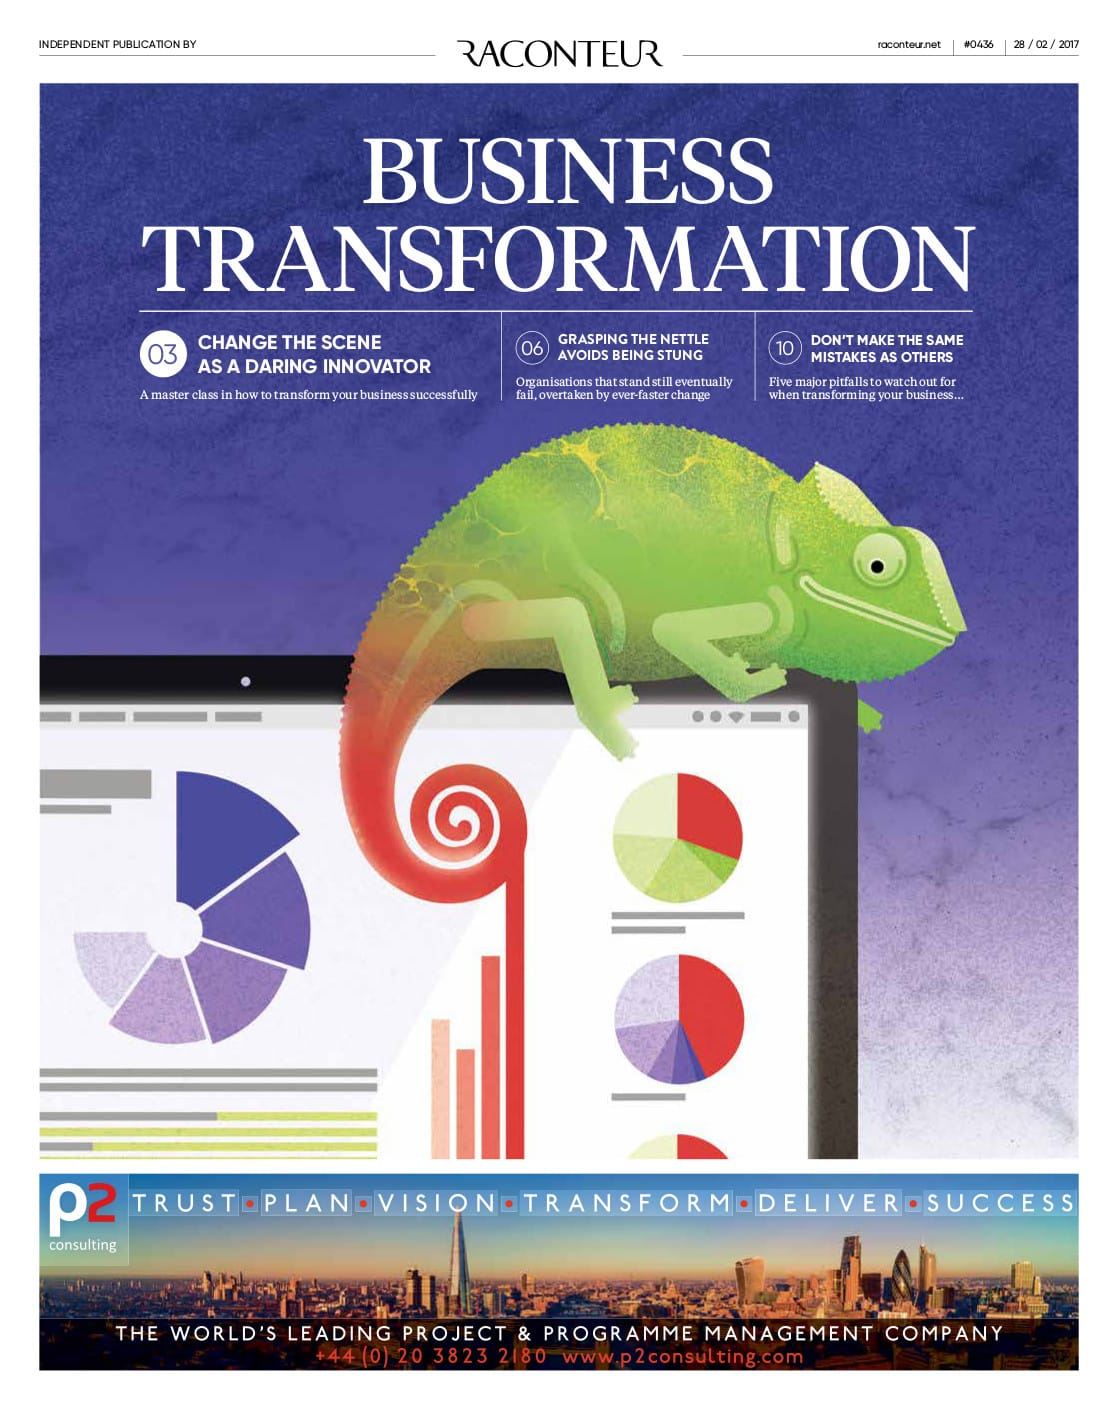 Business Transformation - Taking a collaborative approach to change